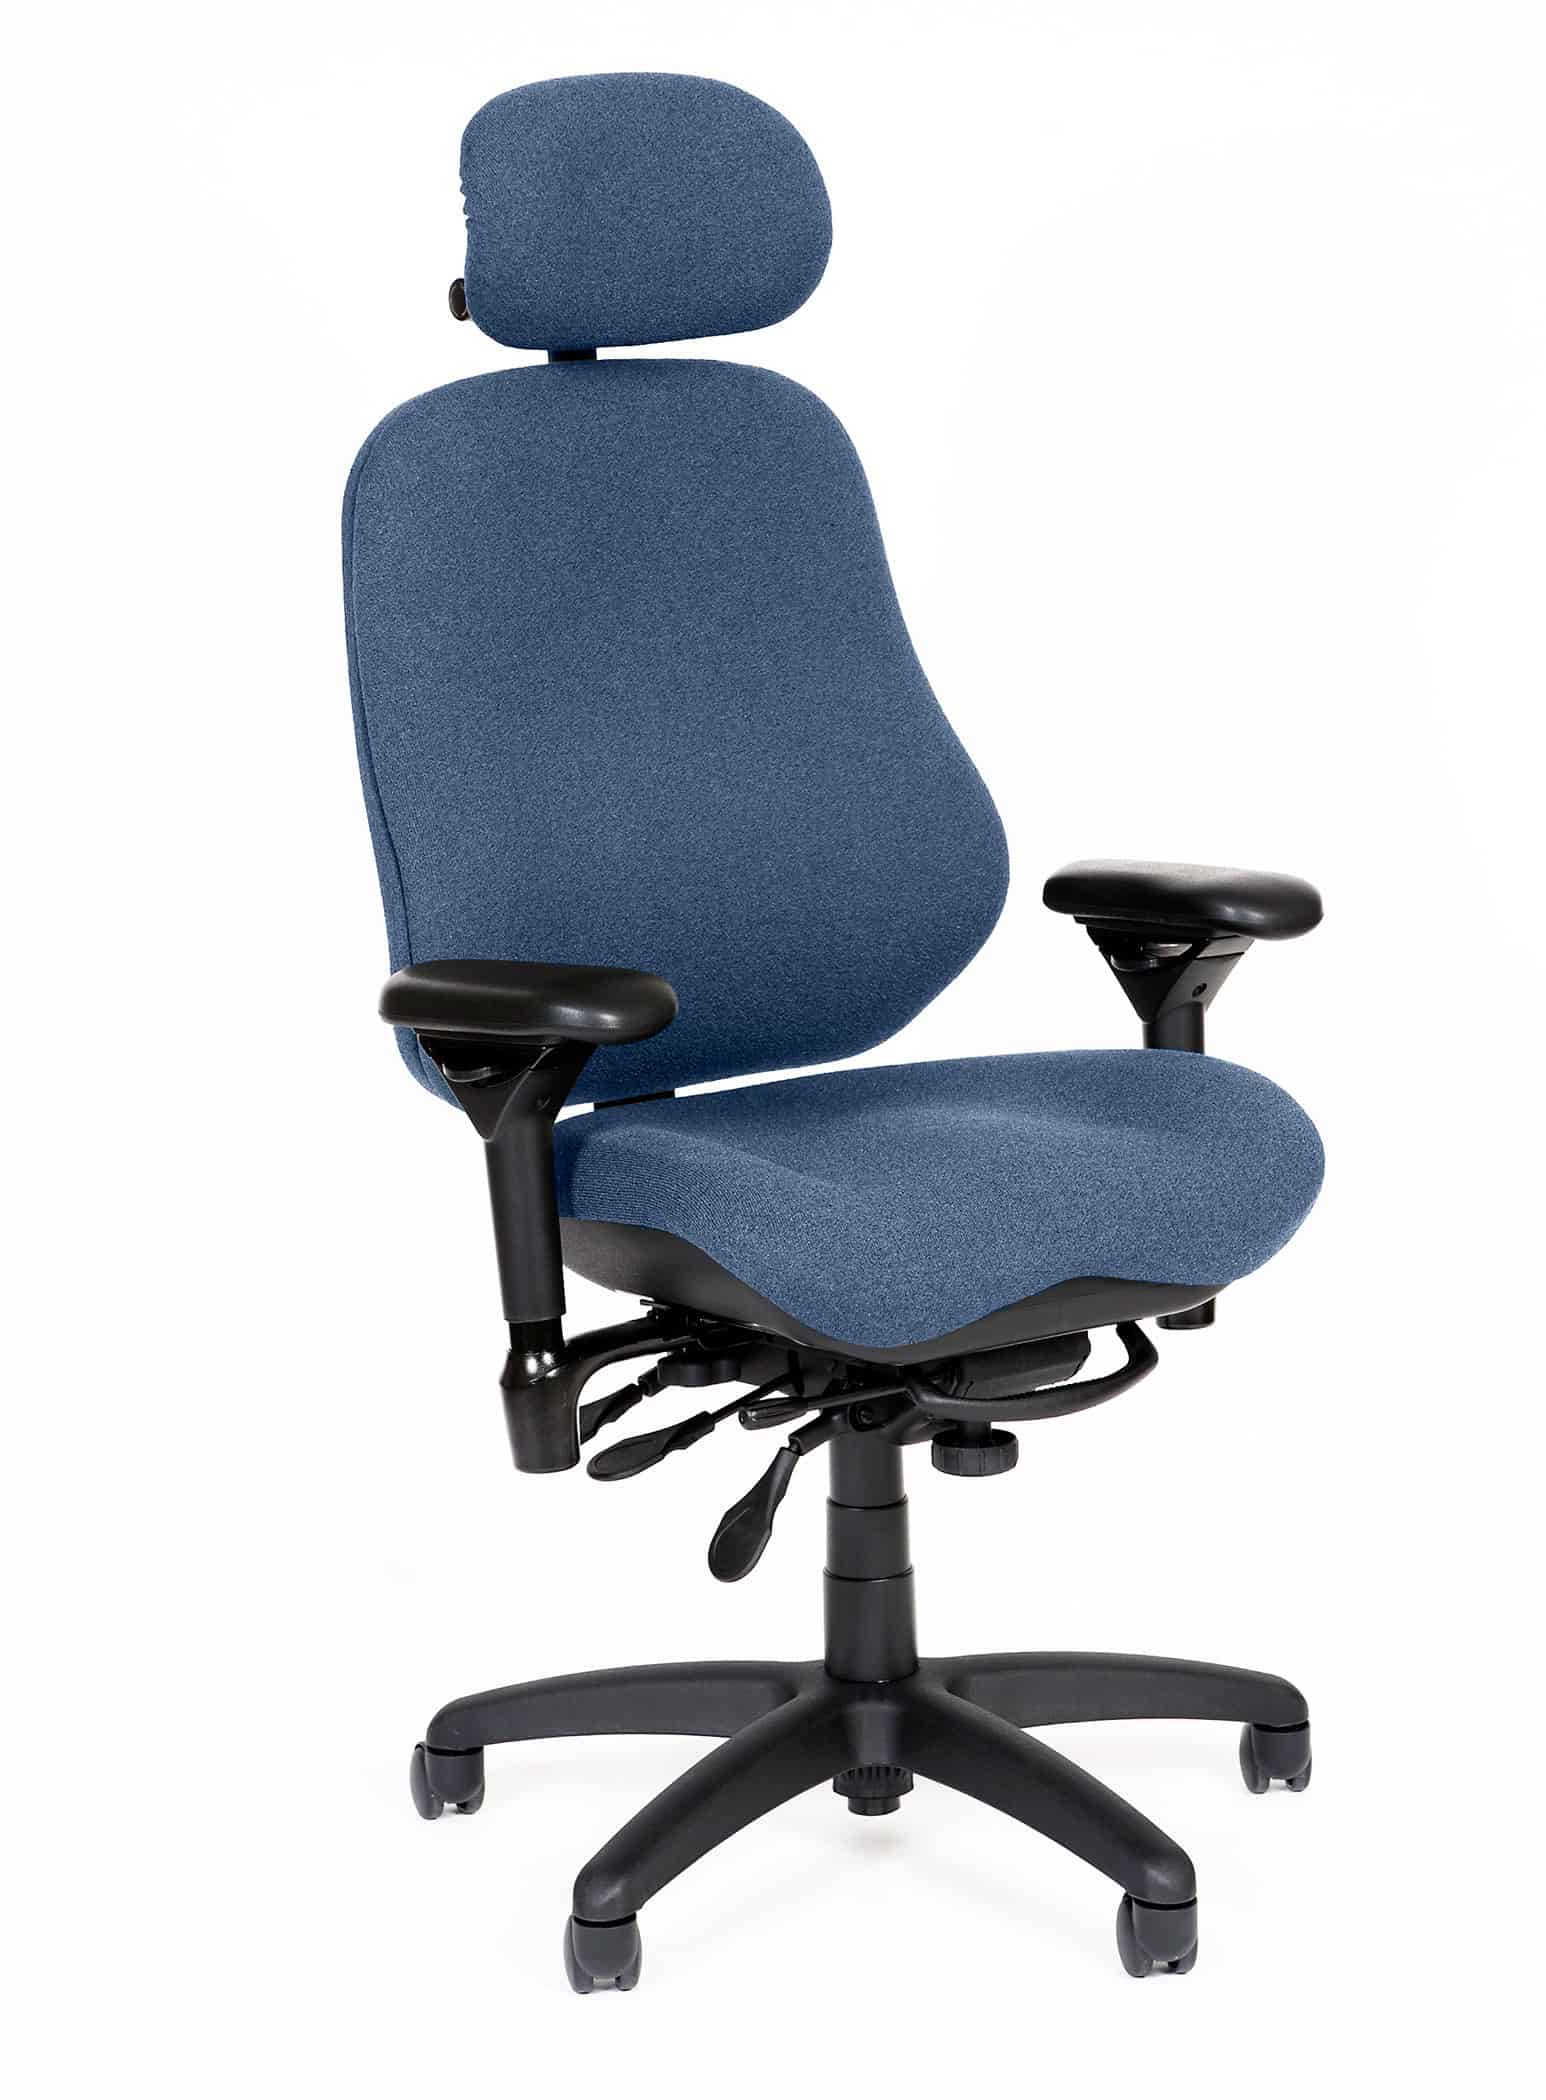 Air traffic controller chairs Office furniture 911